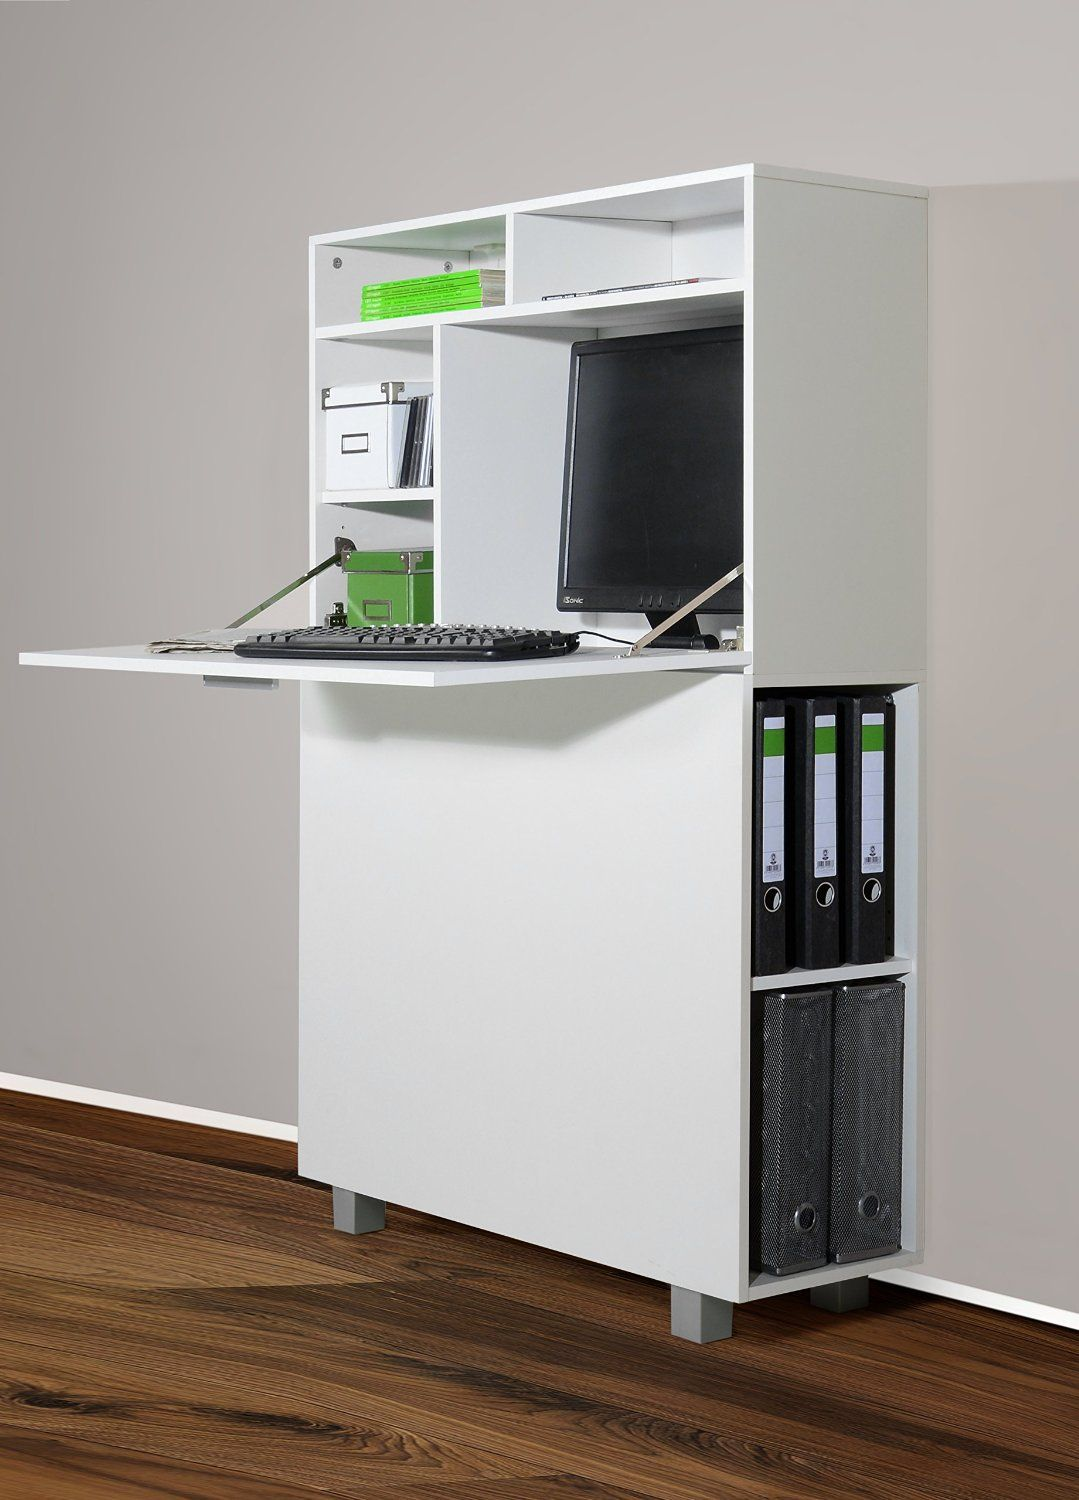 Amazon Tablet Küche 1195 1 Moderner Wandsekretär Od Pc Schrank Weiß Amazon